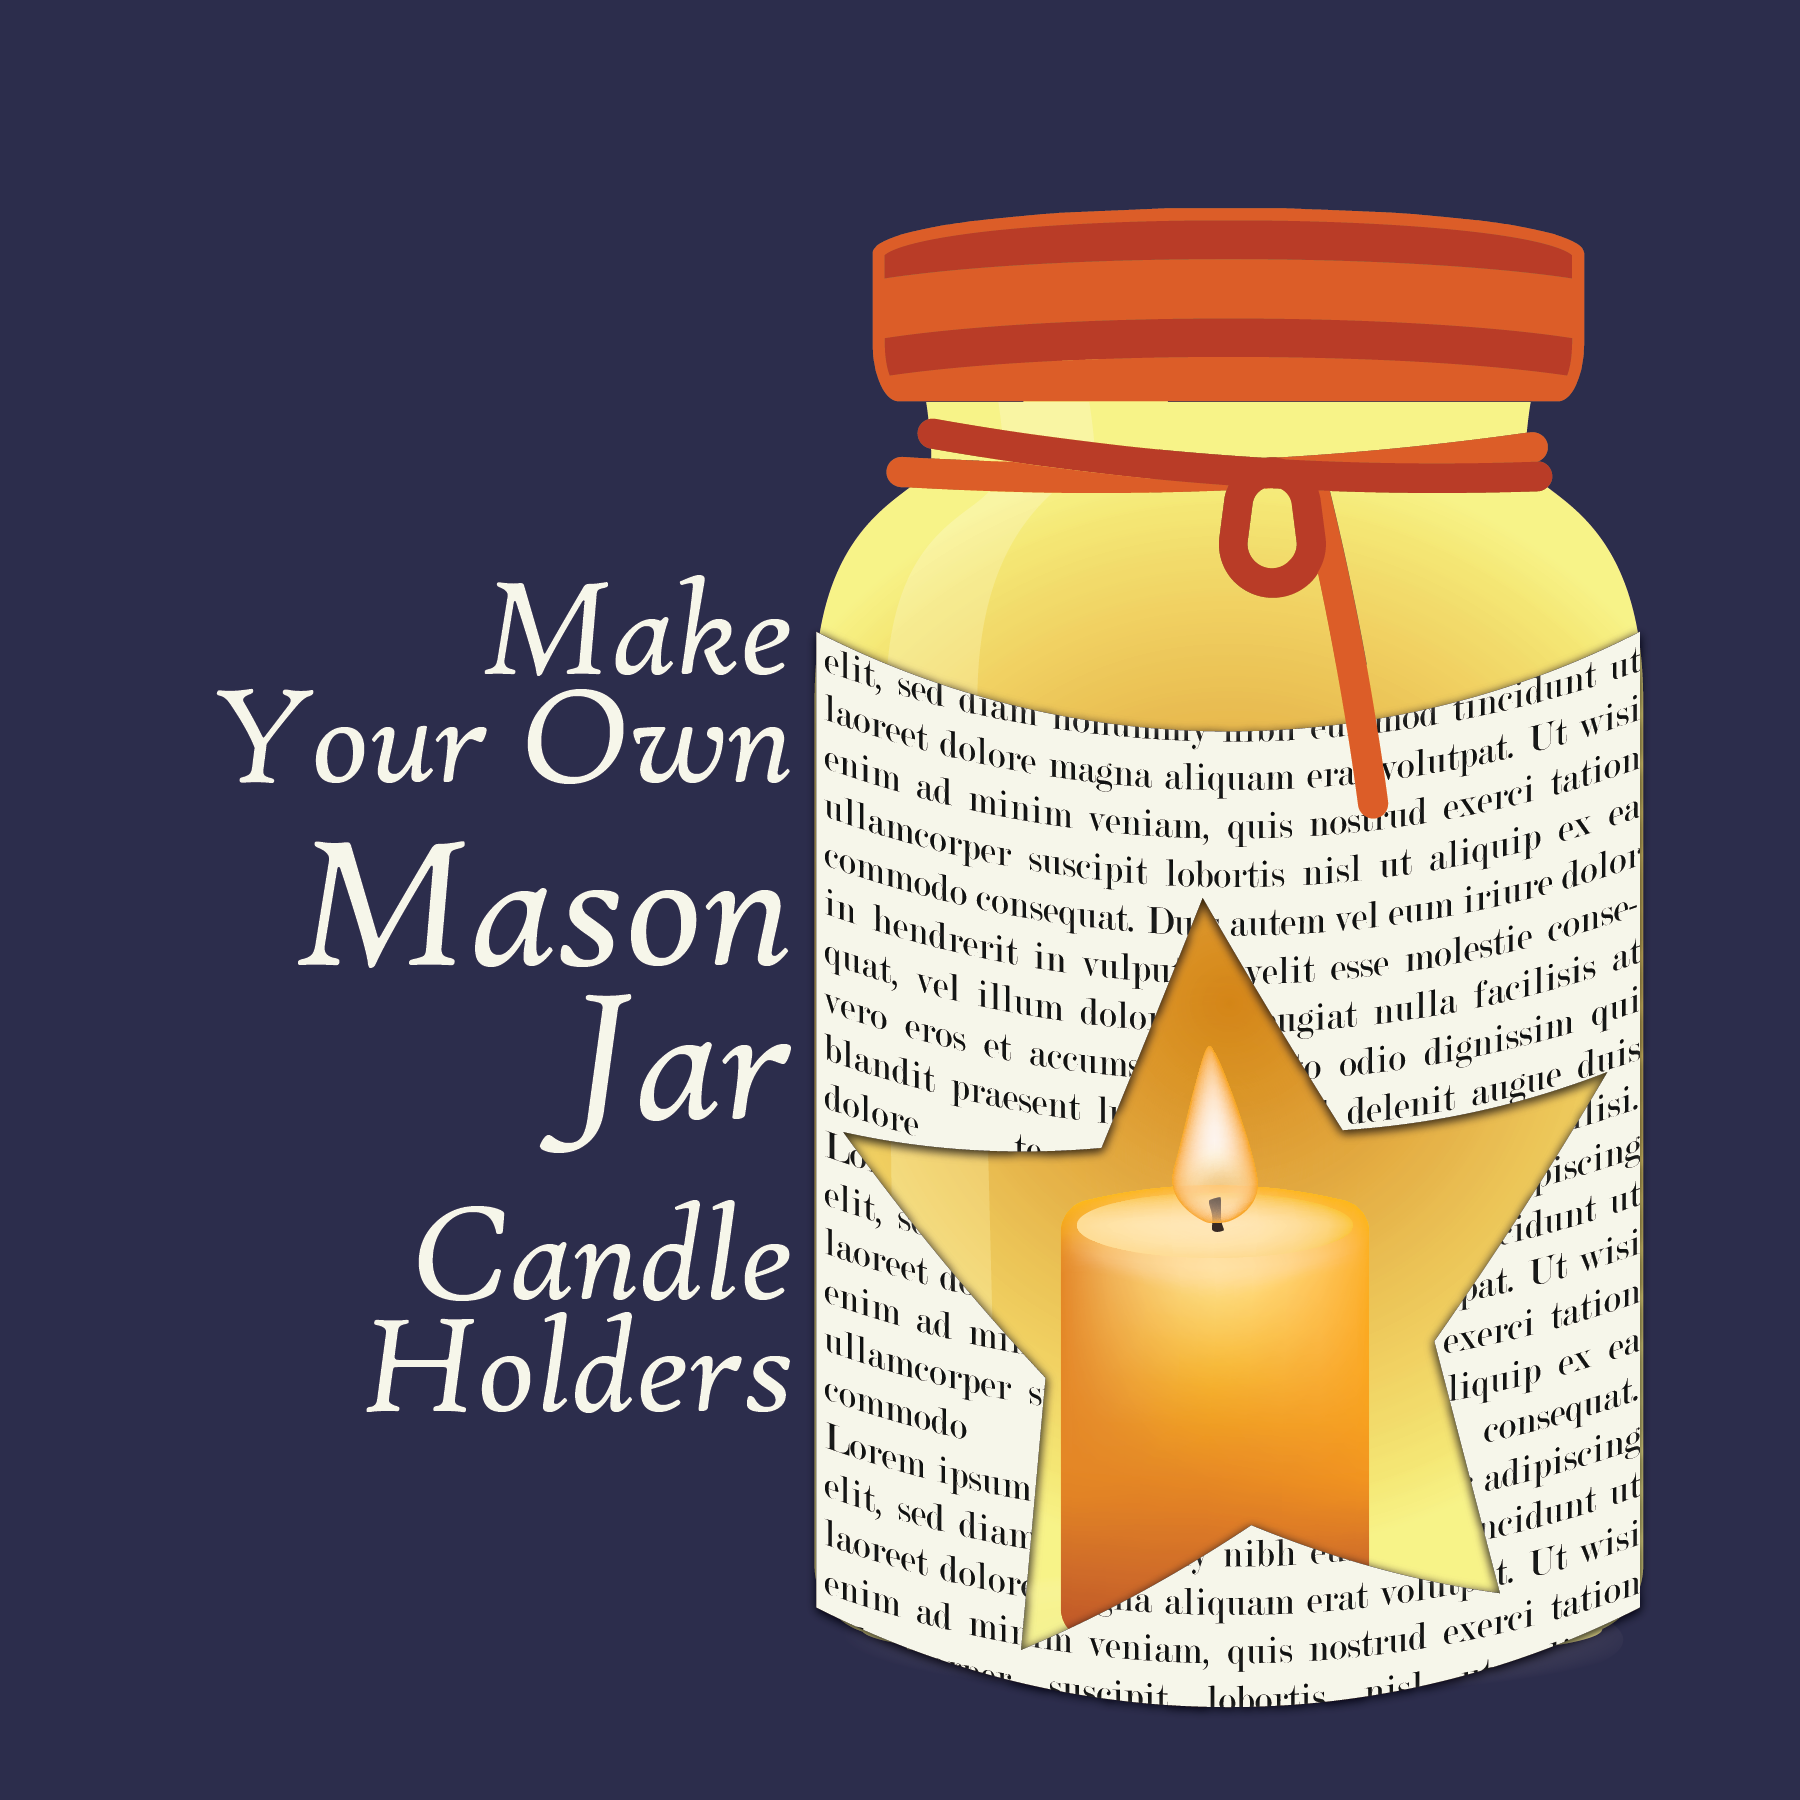 Make Your Own: Mason Jar Candle Holder